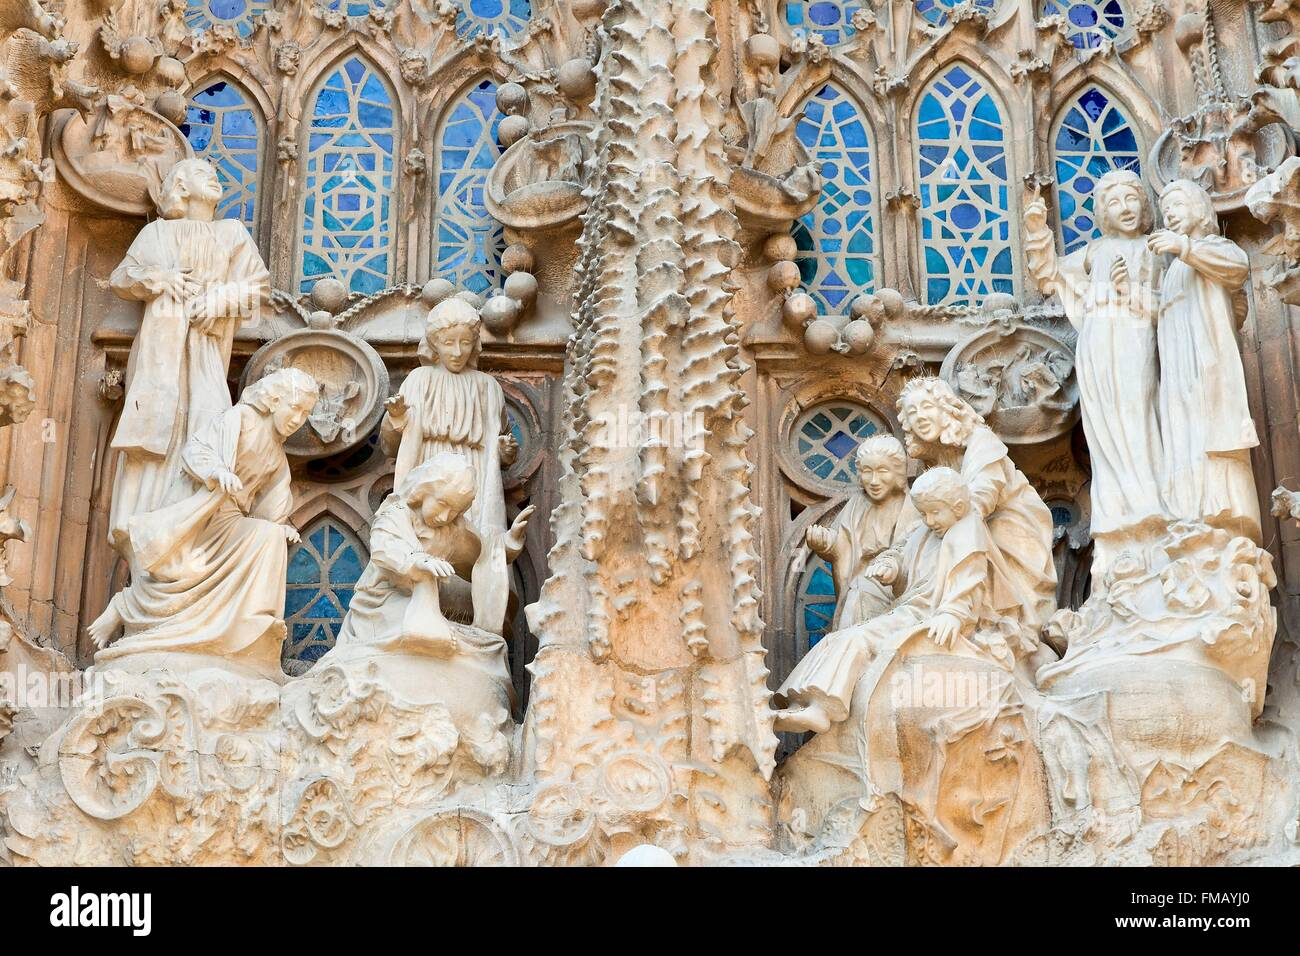 Spain, Catalonia, Barcelona, Sagrada Familia Cathedral listed as World Heritage by UNESCO - Stock Image